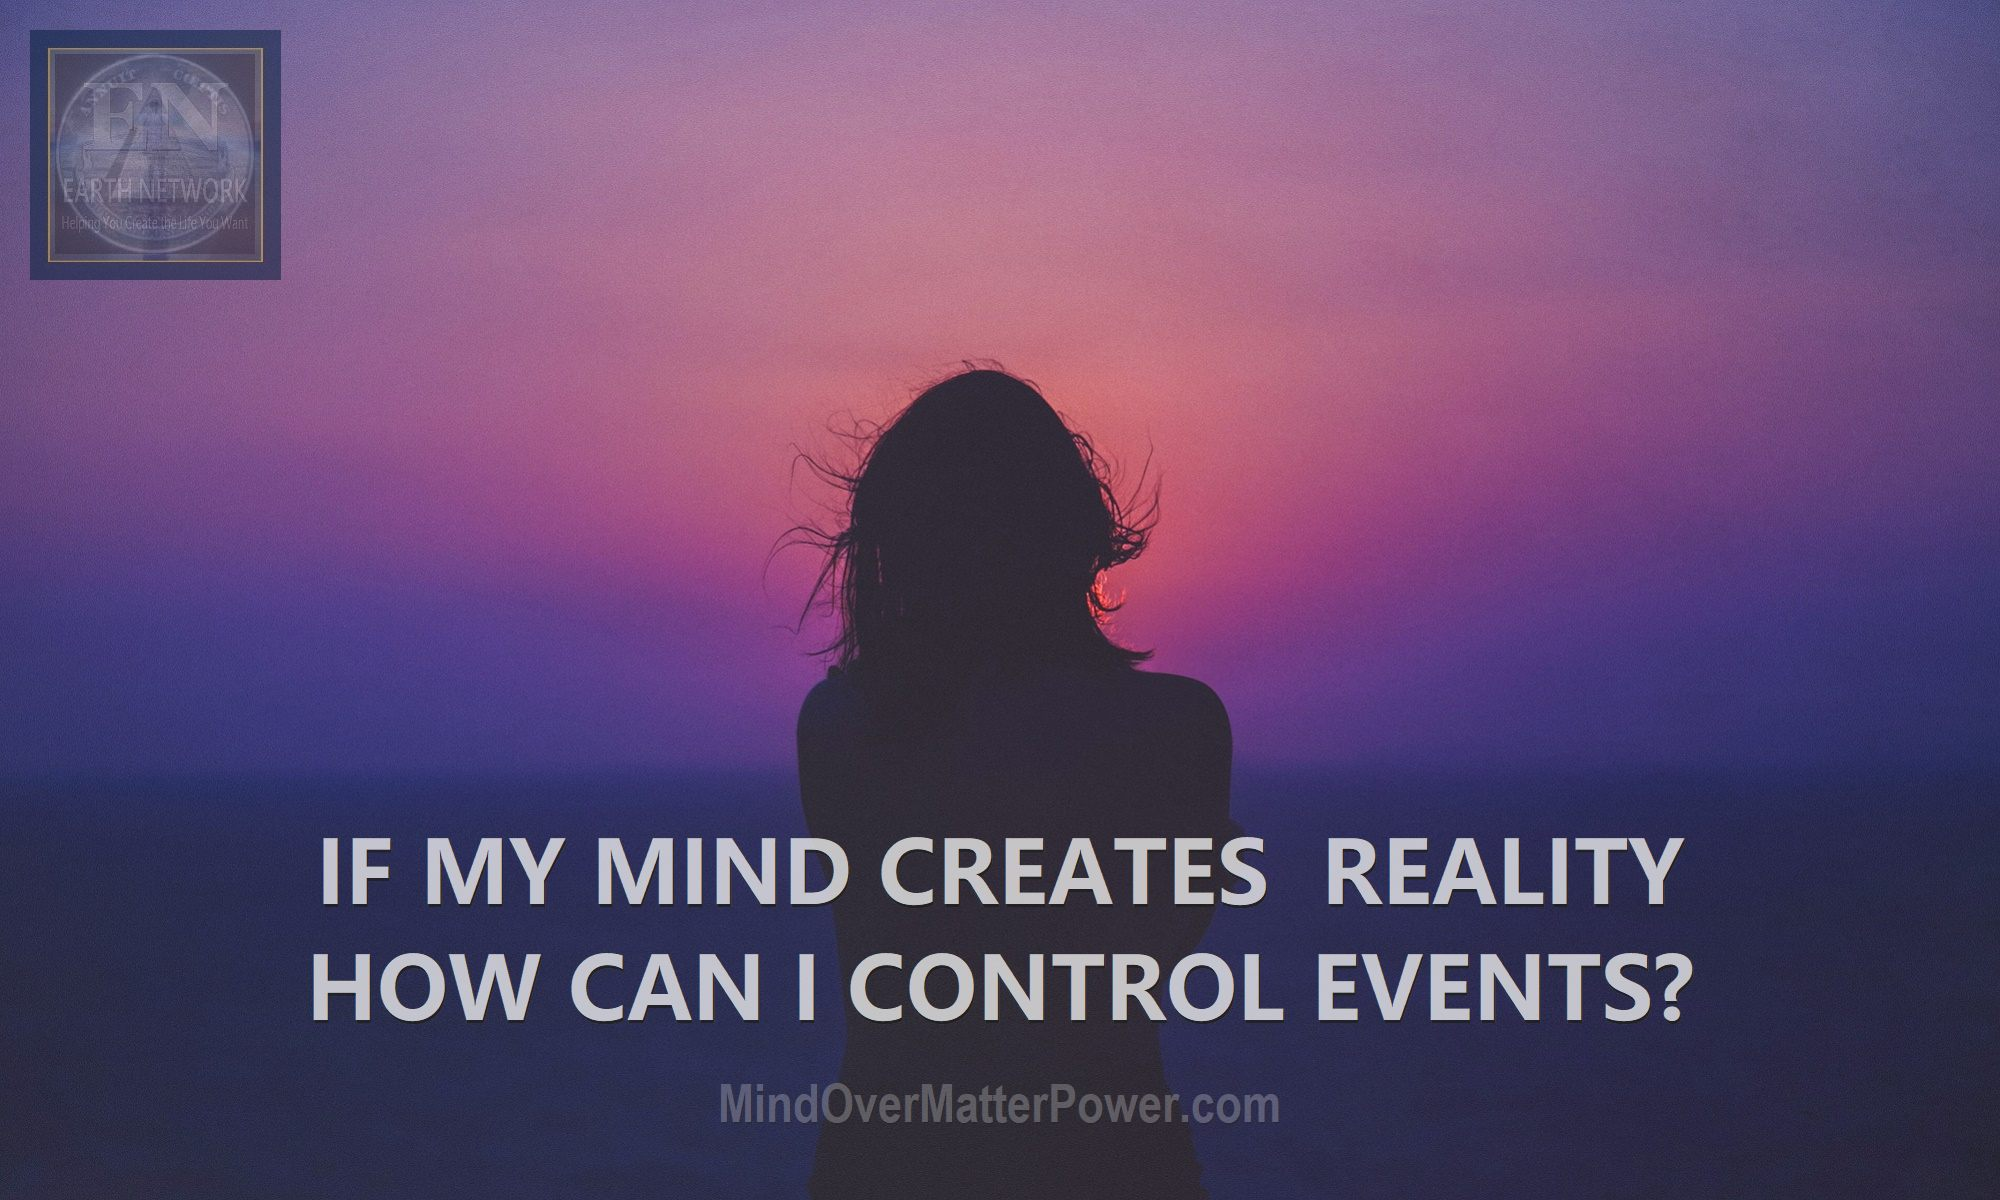 how-does-my-mind-create-physical-reality-can-i-use-my-mental-power-to-manipulate-control-change-events-life-everything-thoughts-feature-image